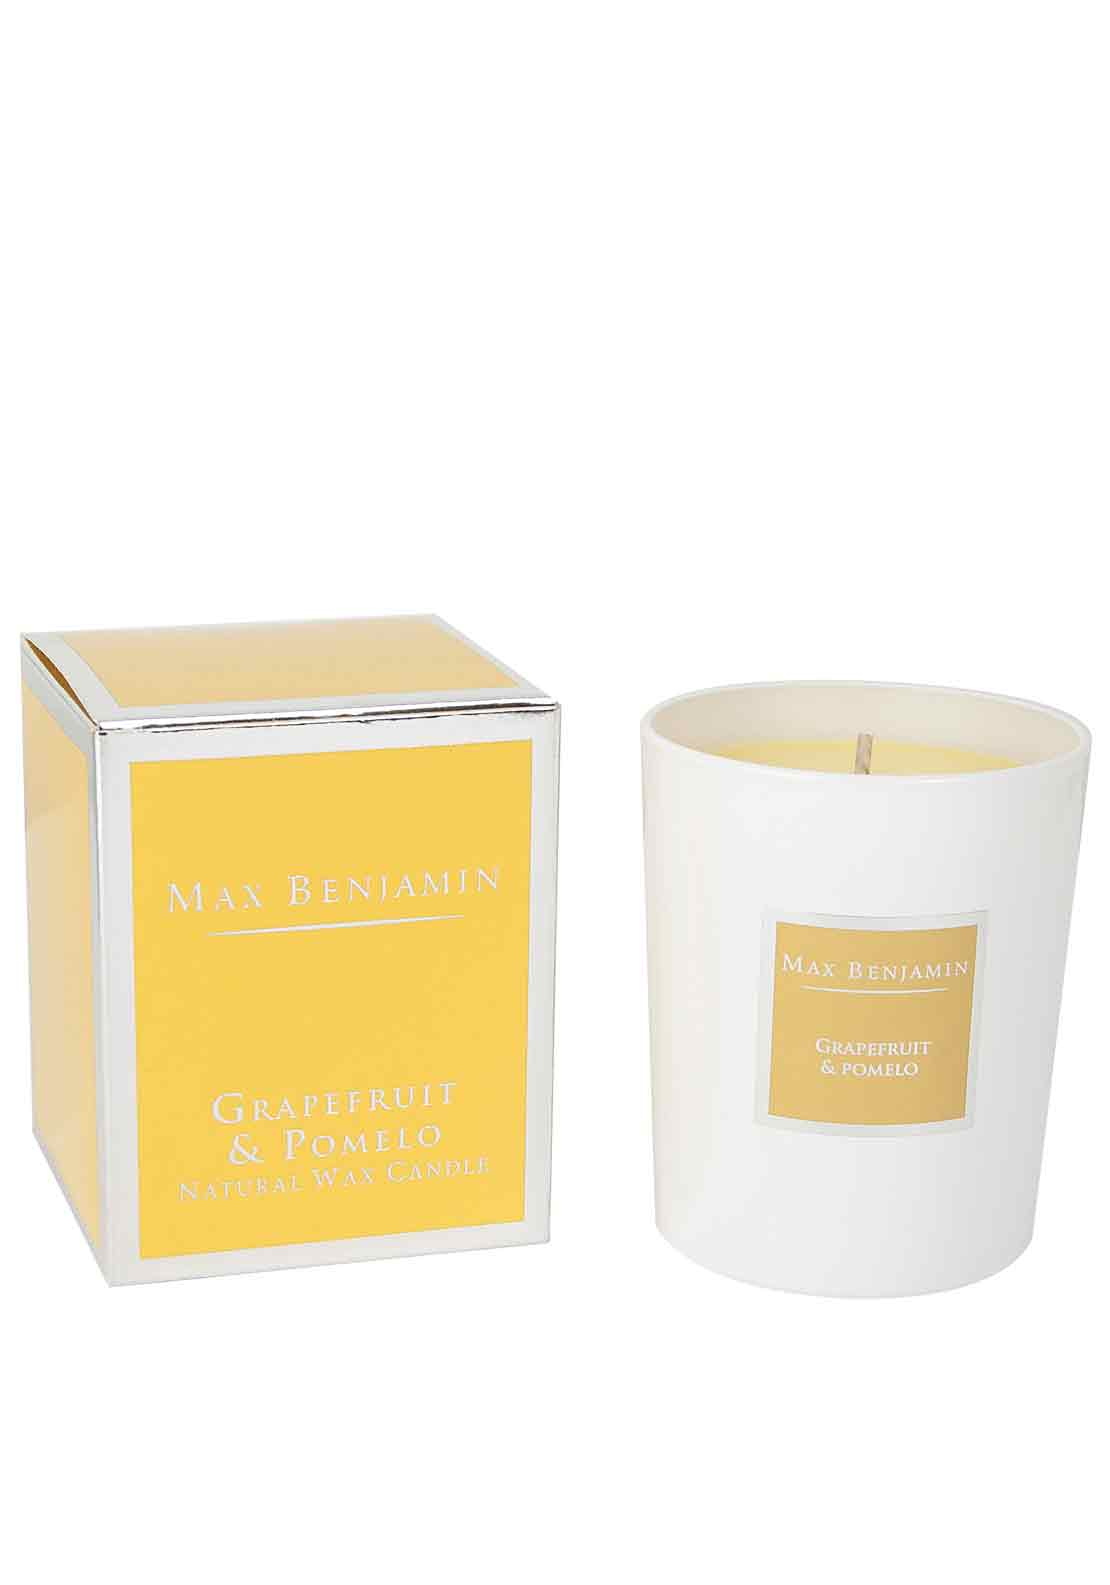 Max Benjamin Grapefruit & Pomelo Scented Candle